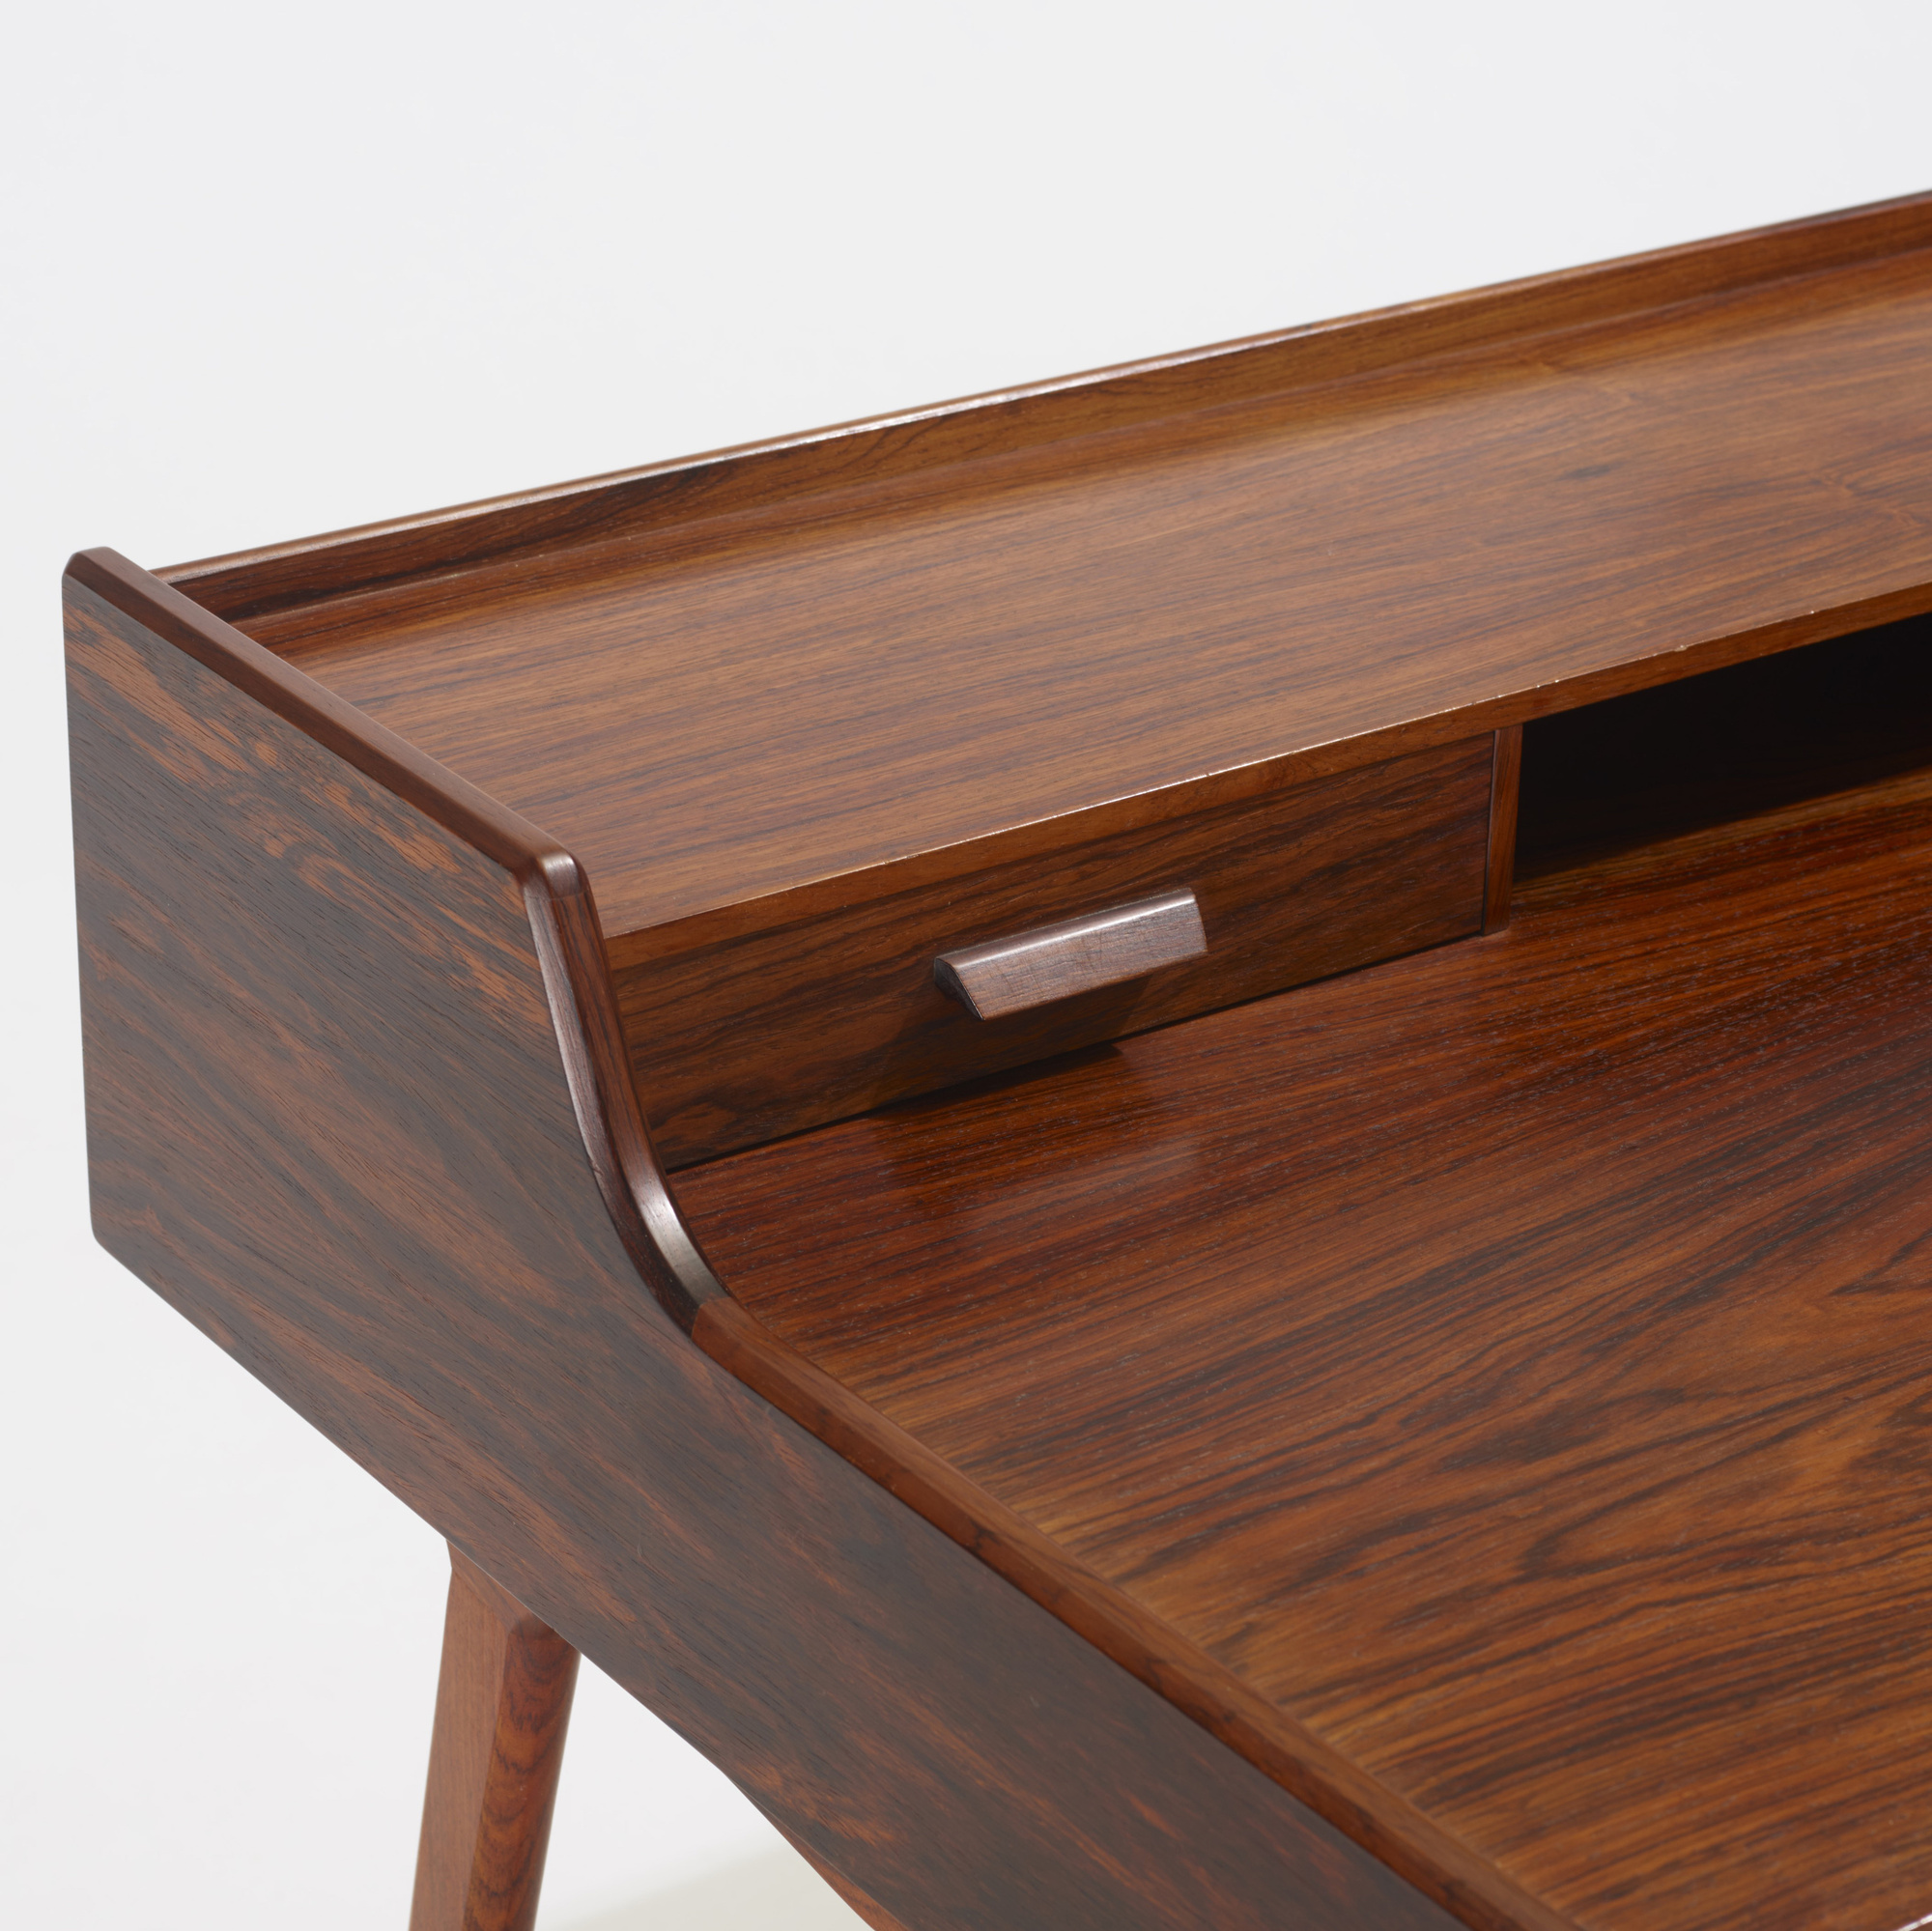 266: Arne Wahl Iversen / desk (3 of 3)